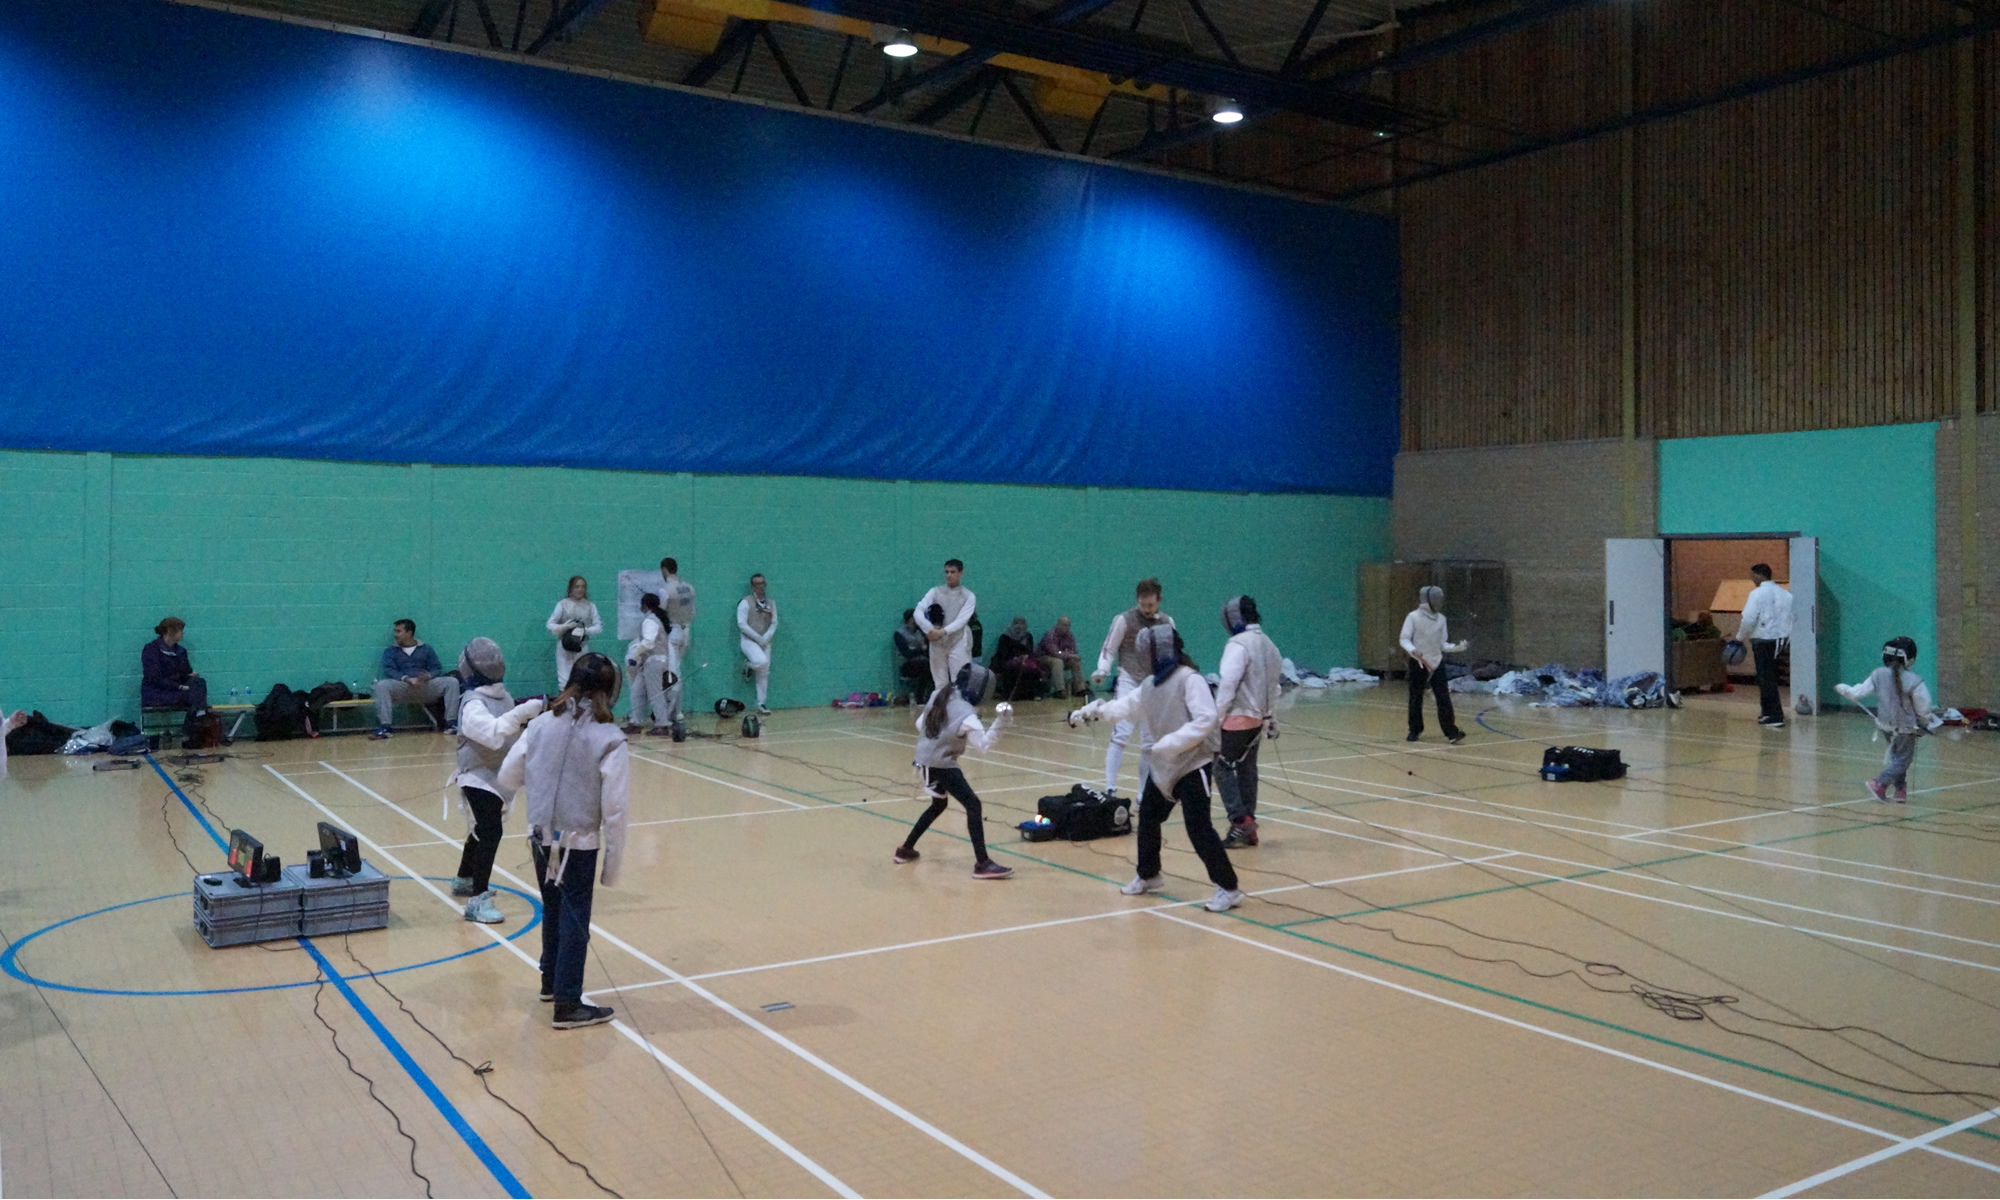 Solihull Fencing Club